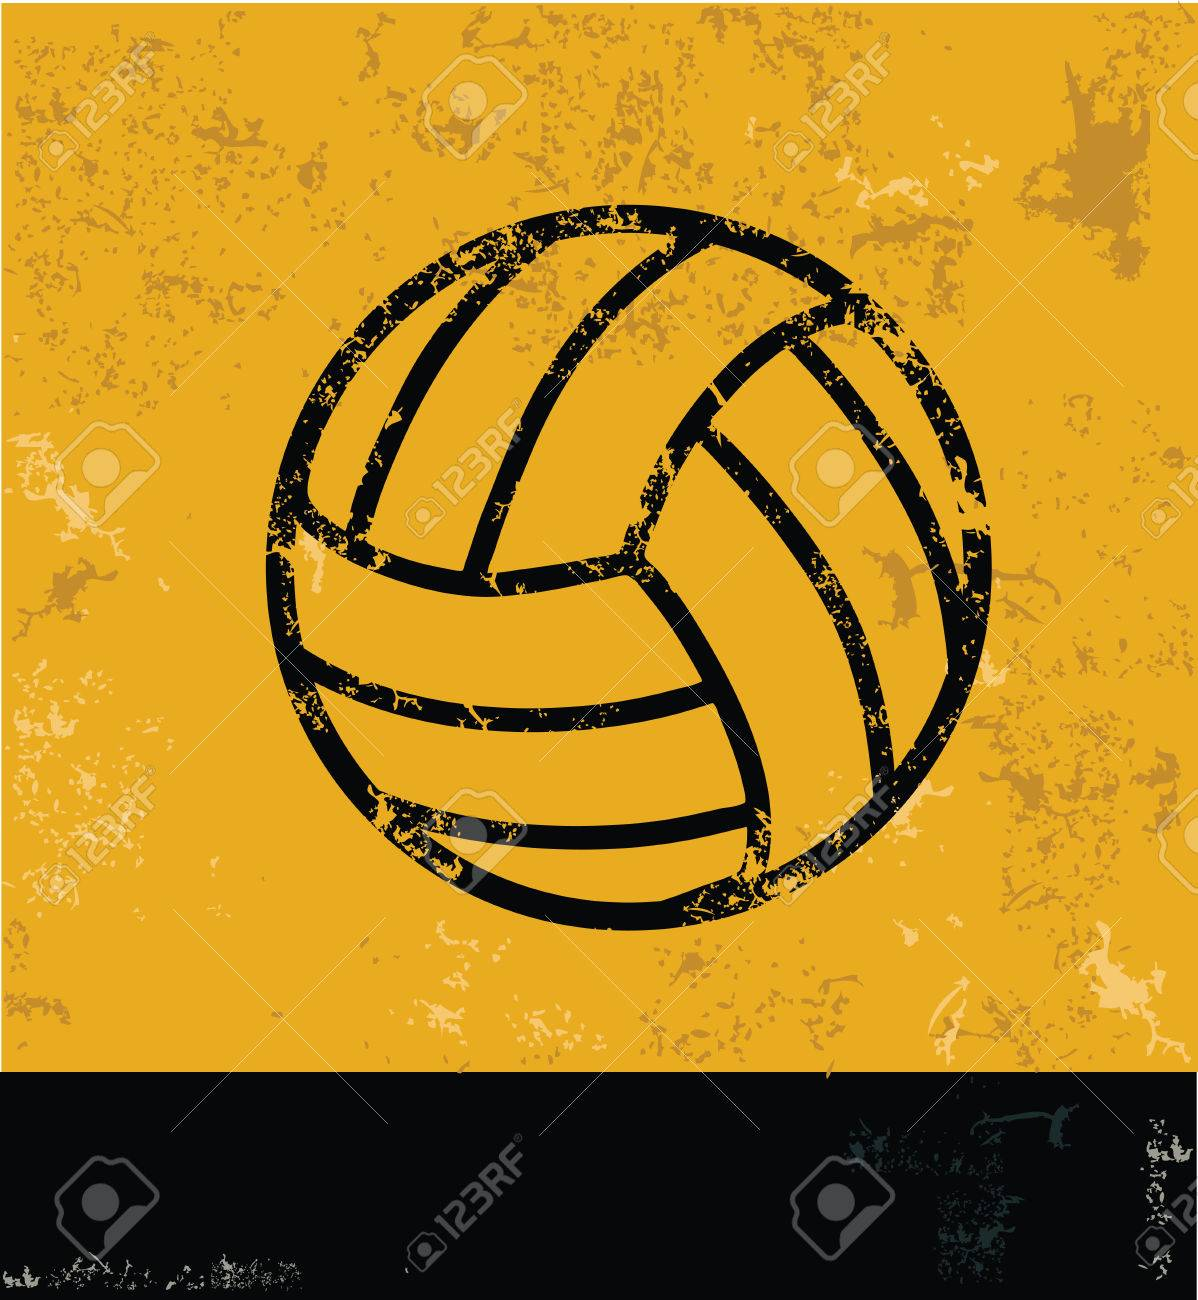 Volleyball Design On Yellow Background Yellow Vector Royalty Free Cliparts Vectors And Stock Illustration Image 34670884